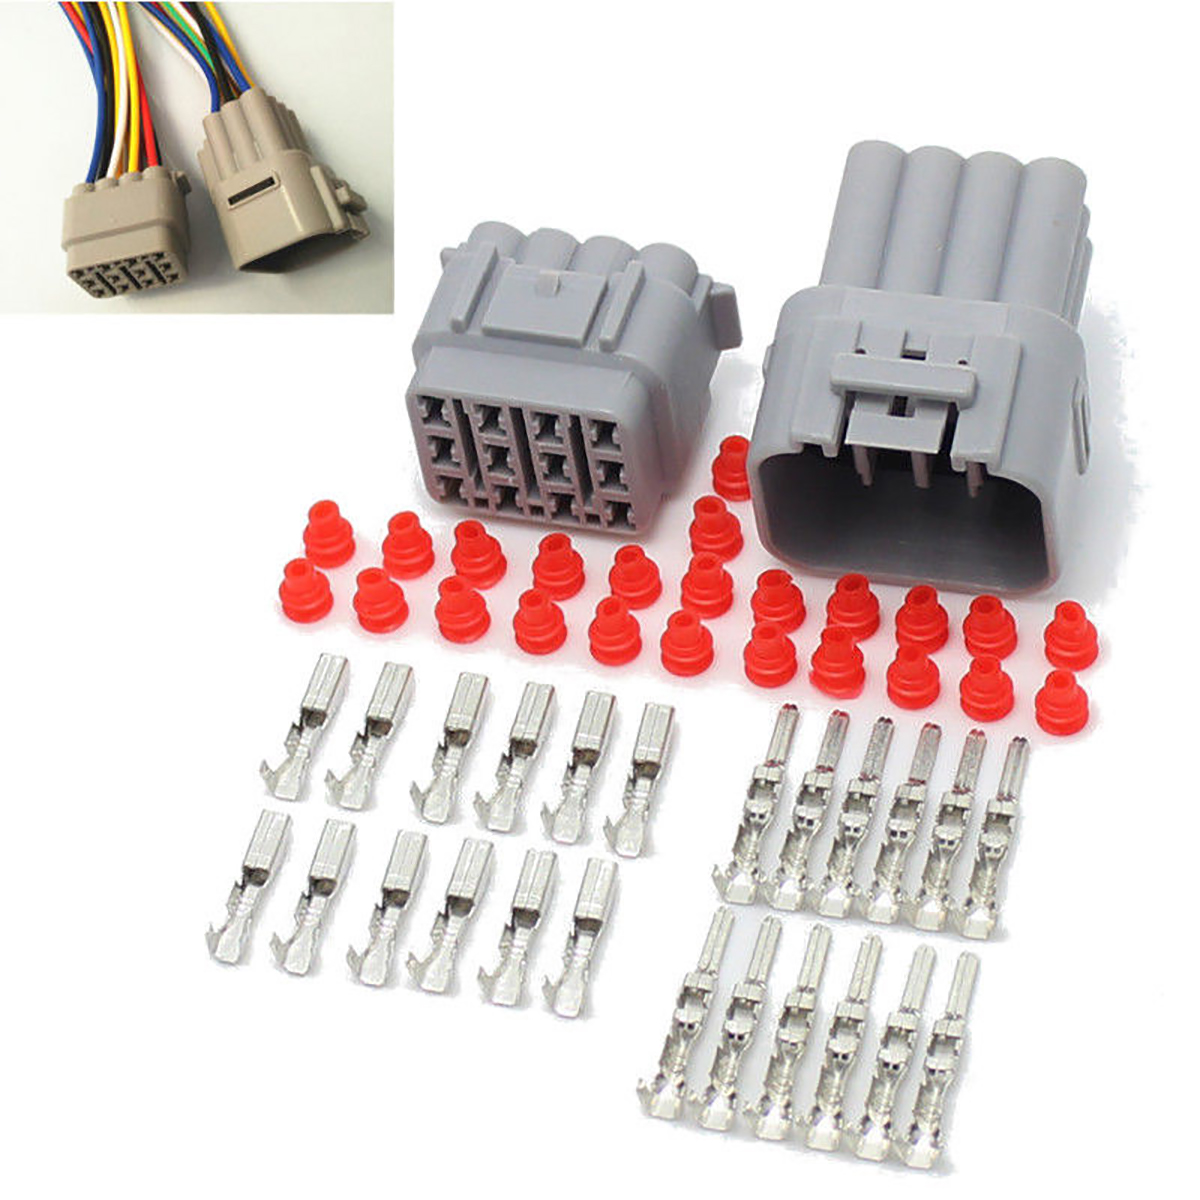 1 Set DJ712Y-2.3 Waterproof Electrical Wire Connector Plug 12 Pin Way Sealed For Auto Car 10kit 282088 1 282106 1 ip67 4pin way super sealed waterproof electrical wire connector auto plug for car caravan marine jet